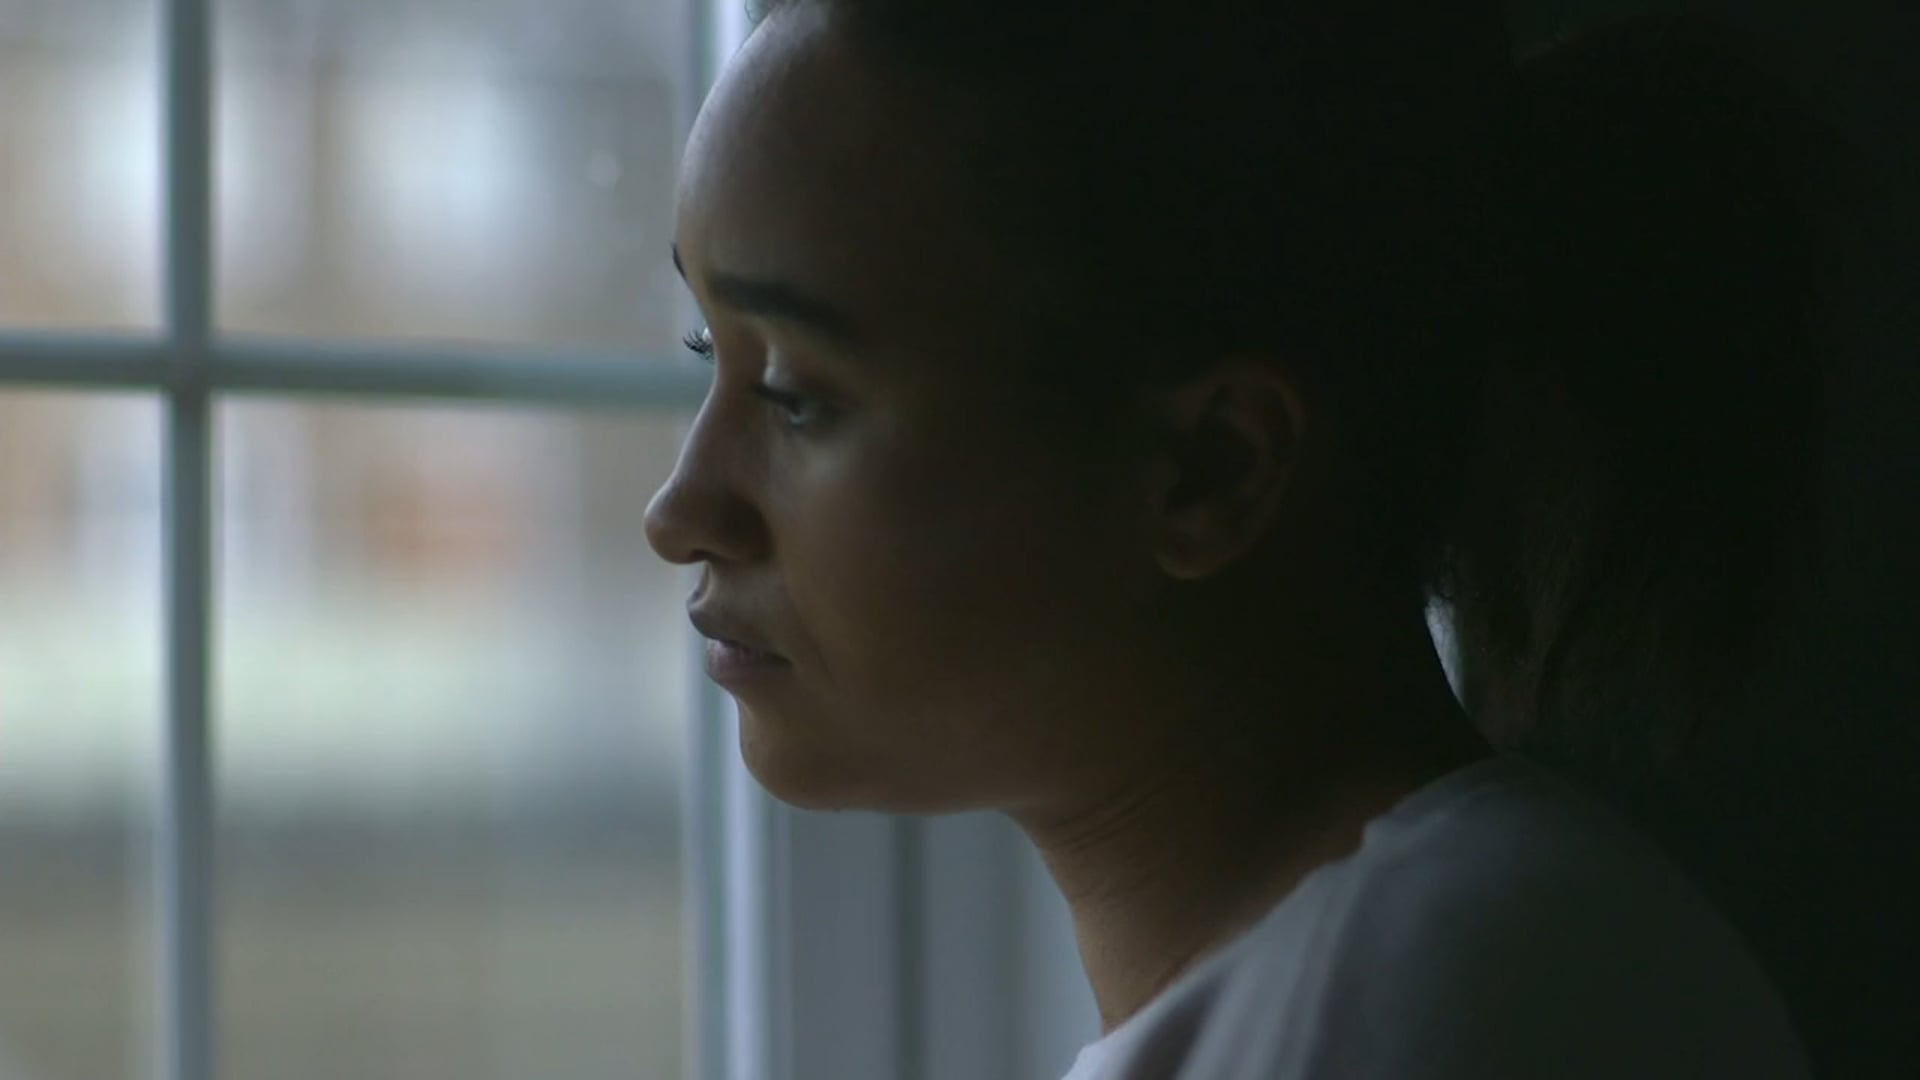 Knife Crime and the Impact on Families